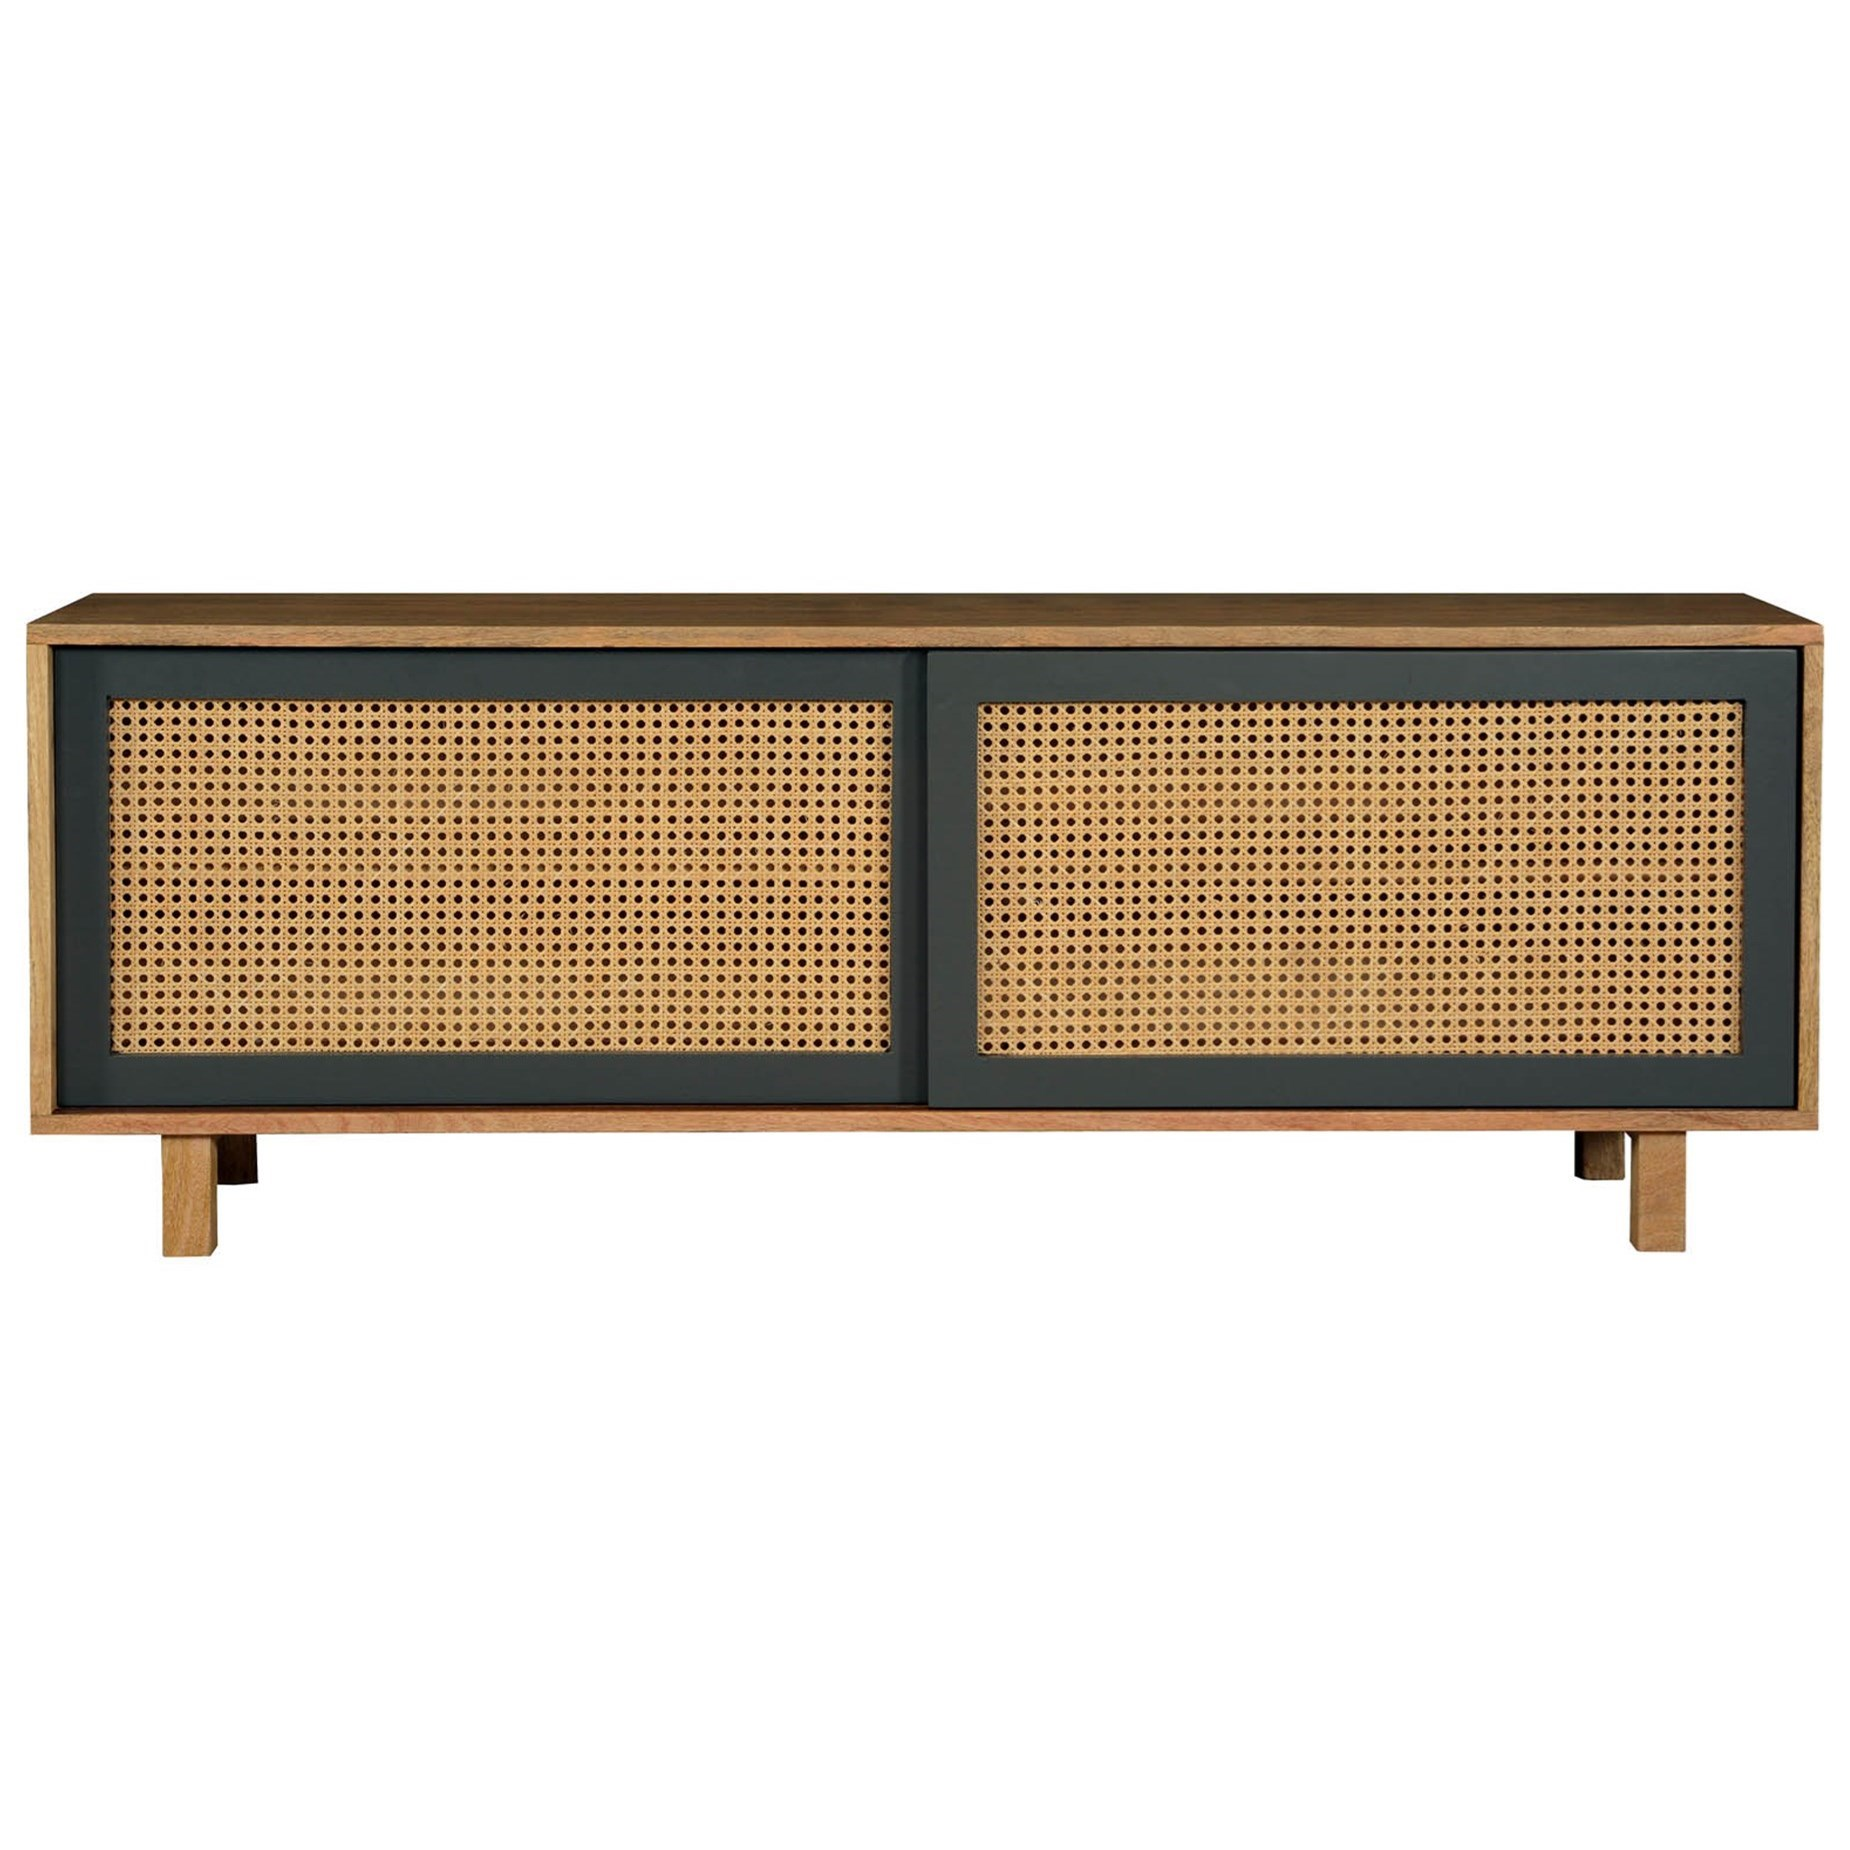 Ashton Woven Cane Media Console by Moe's Home Collection at Stoney Creek Furniture